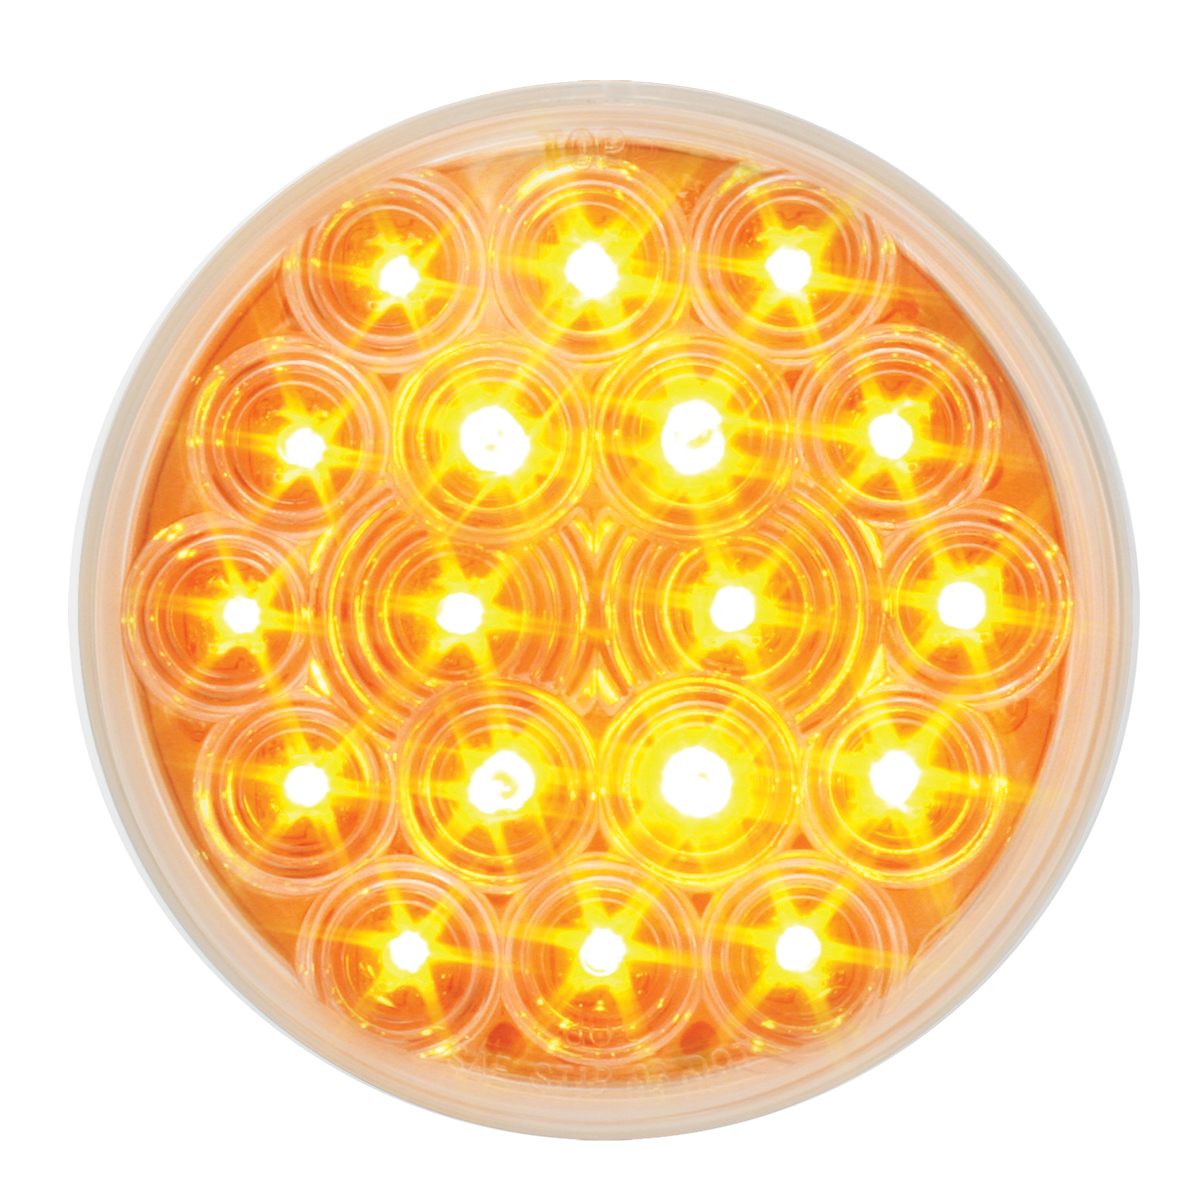 "76451 4"" Fleet LED Light in Amber/Clear"